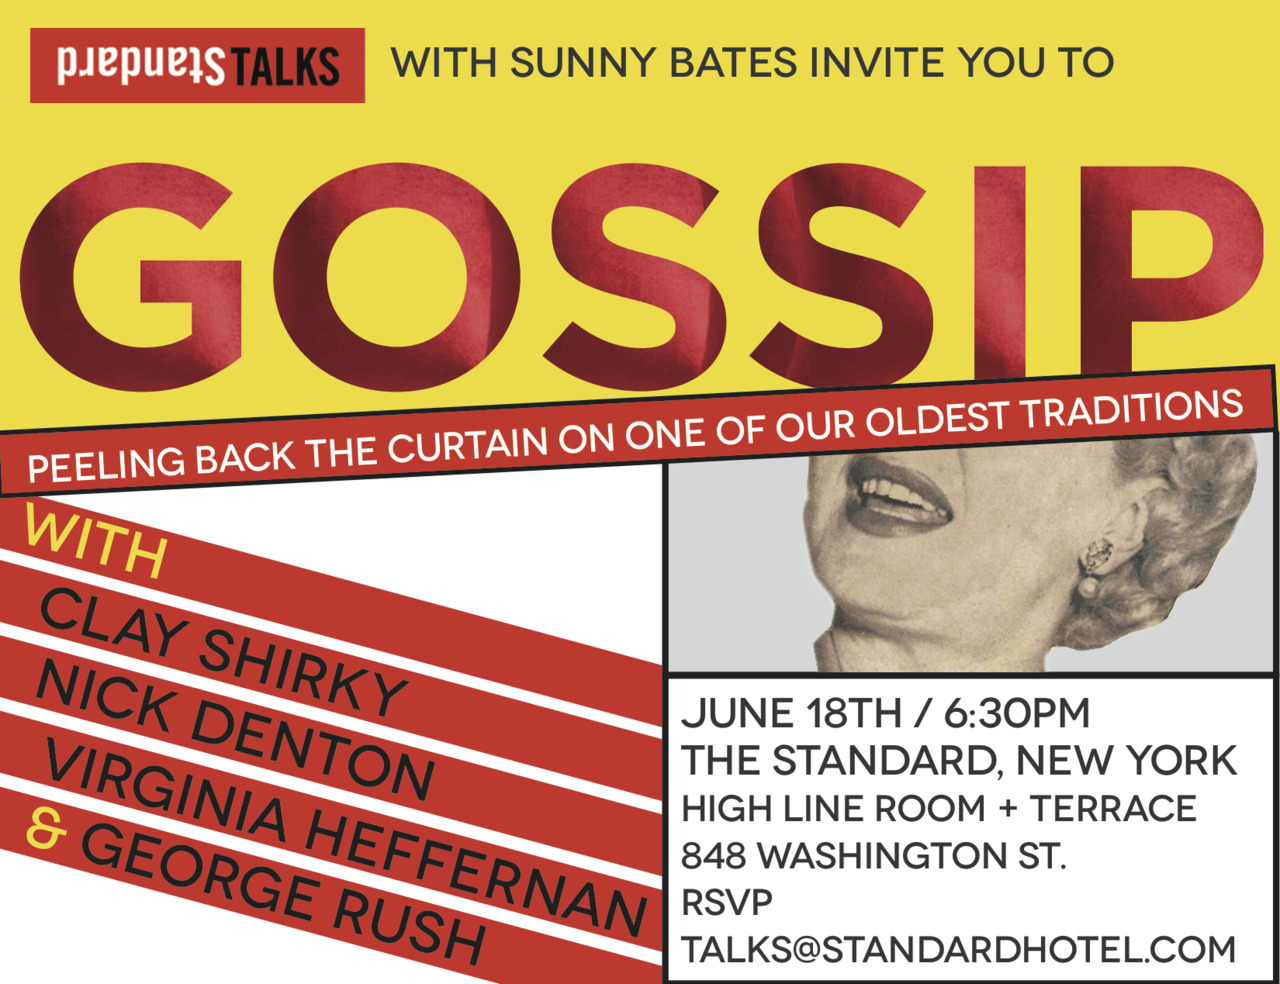 Come to our next StandardTalk on Gossip. June 18th, 6:30pm at The Standard, New York. —— What's behind the rumor that has the city abuzz? Why do you keep telling yourself you'll stop gossiping, but can't? In the secret world of word-of-mouth, who can journalists trust and how do they source their stories? Peeling back the curtain on gossip, we look at one of the oldest traditions known to humankind. Today, with the Internet exploding with information, most of it impossible to control, how is it changing and where is it heading? With Clay Shirky (Social Media Theorist, Author) Nick Denton (Founder, Gawker) Virginia Heffernan (Yahoo! News) & George Rush (Former Columnist, NY Daily News)The Standard, New YorkHigh Line Room + Terrace848 Washington St.PLEASE RSVP TALKS@STANDARDHOTEL.COM